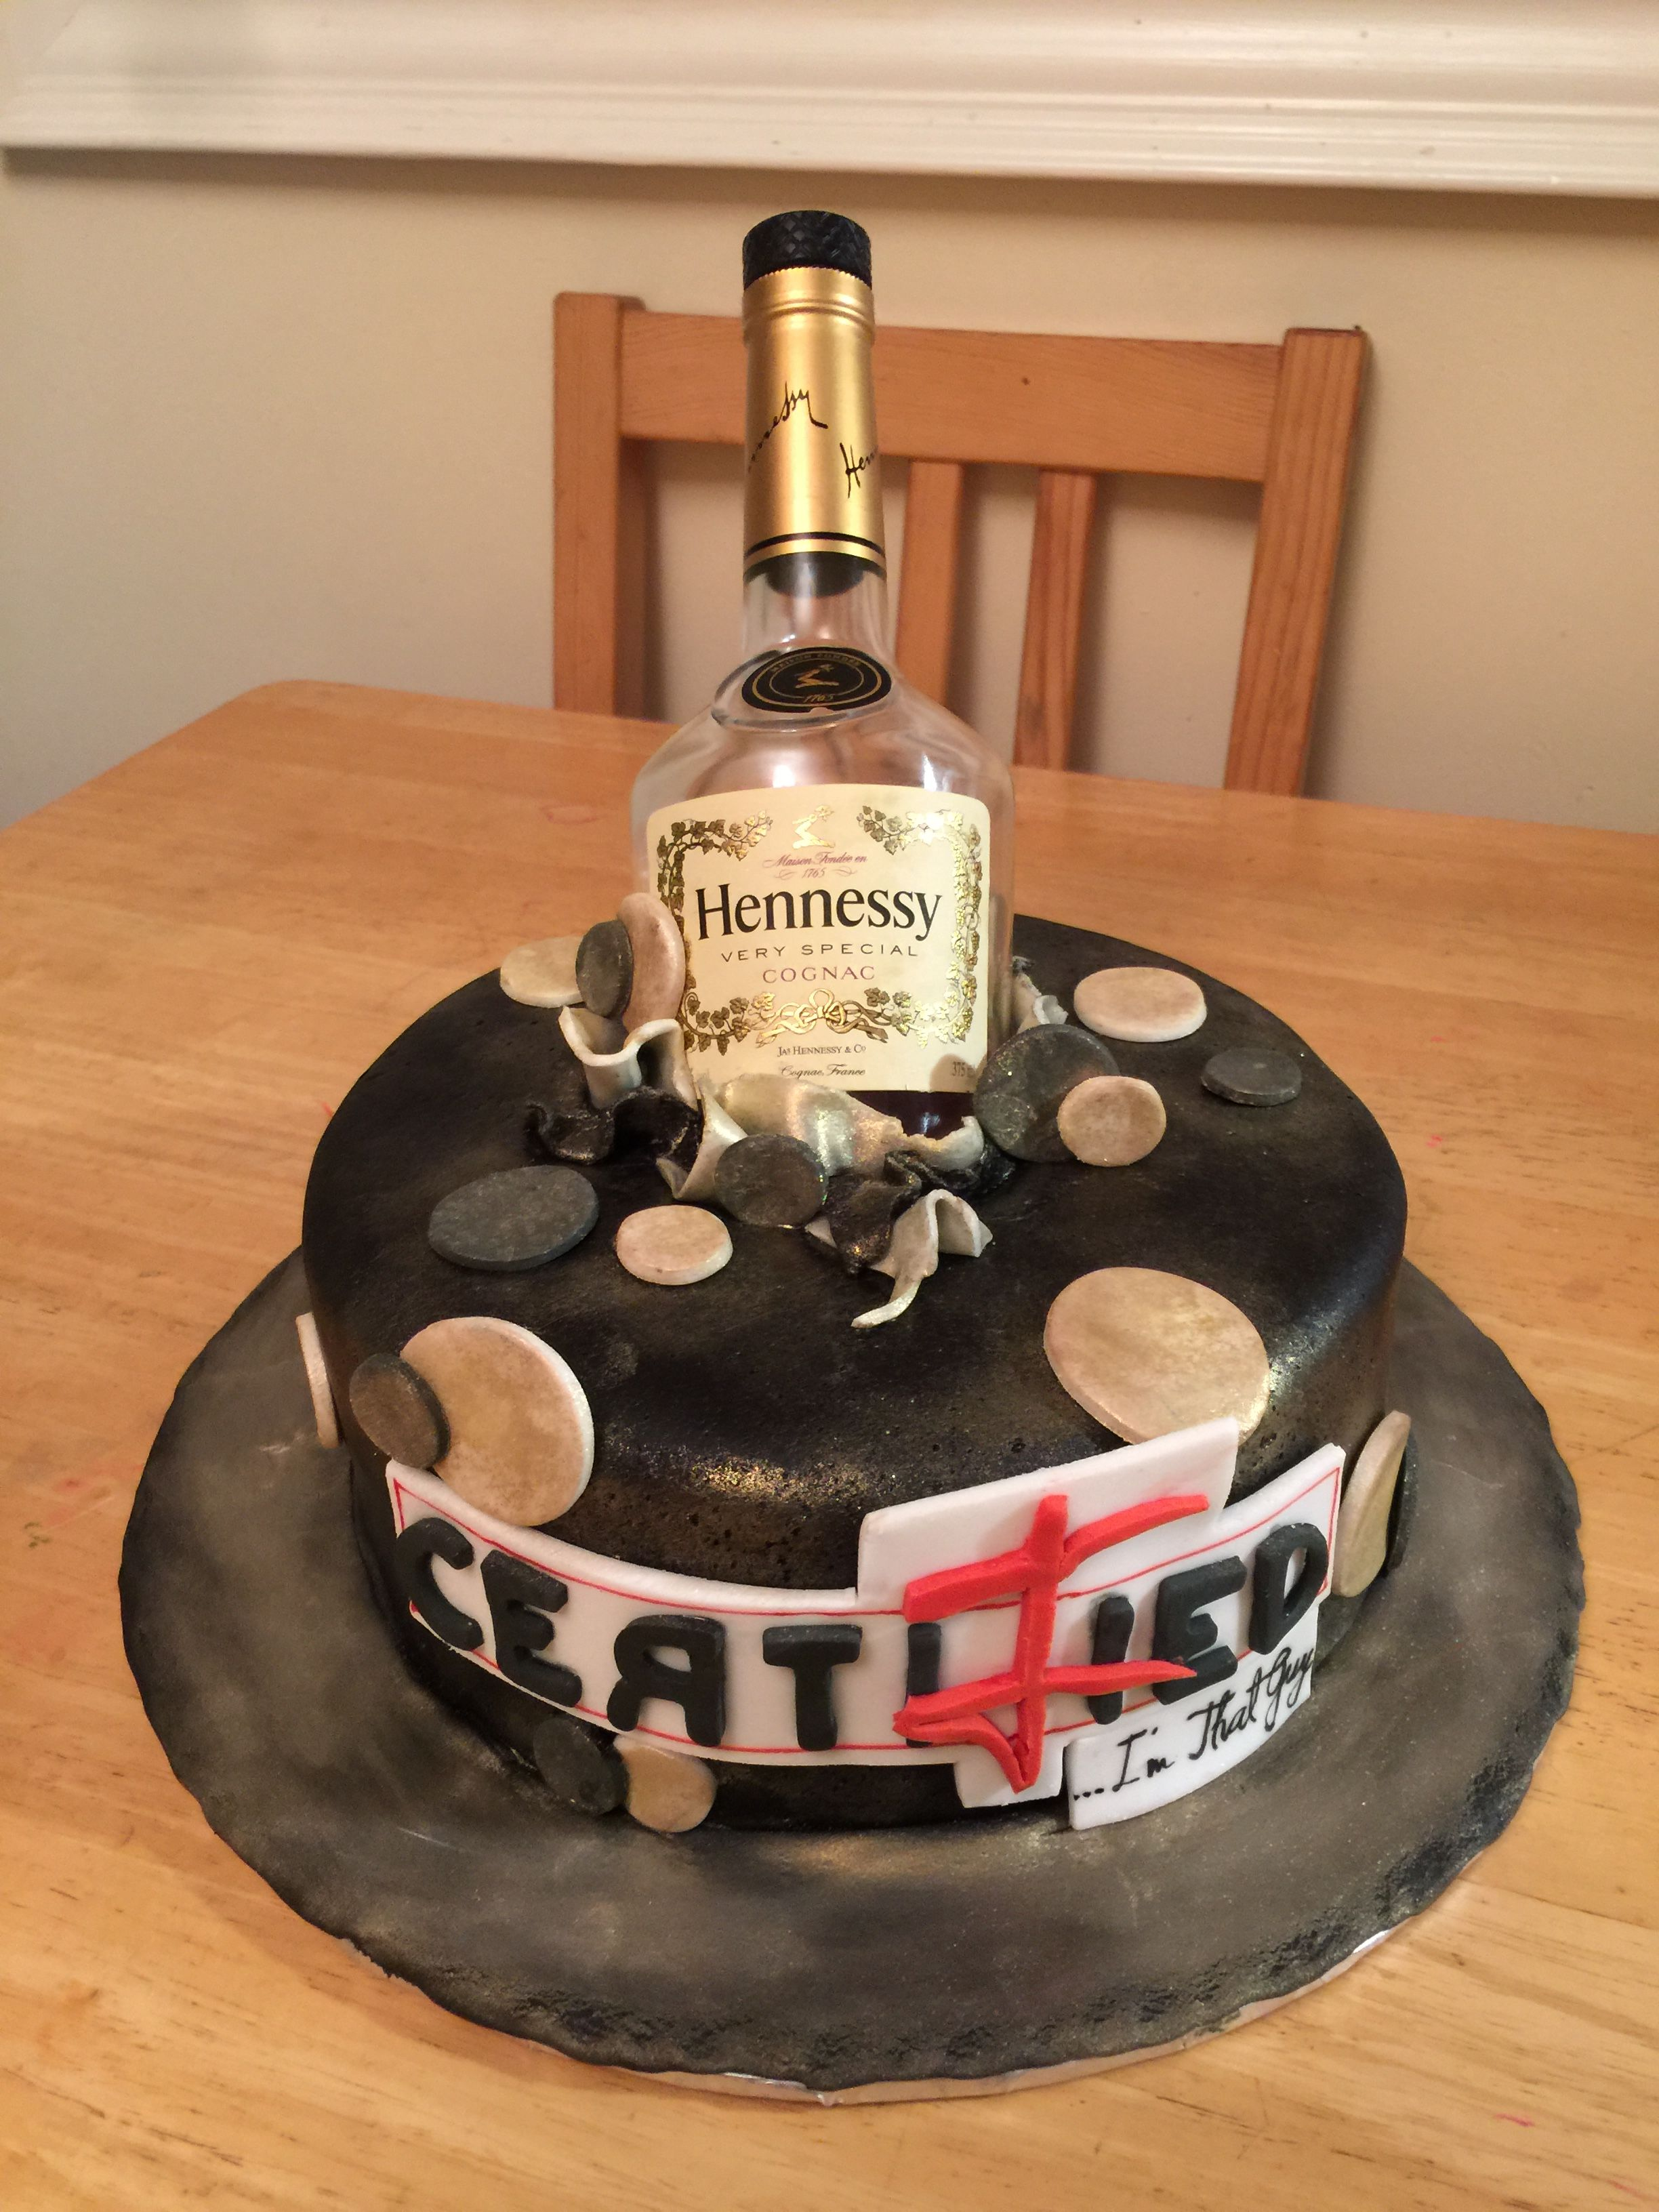 Hennessy Birthday Cake Hennessy Flavoured White Cake Mix With